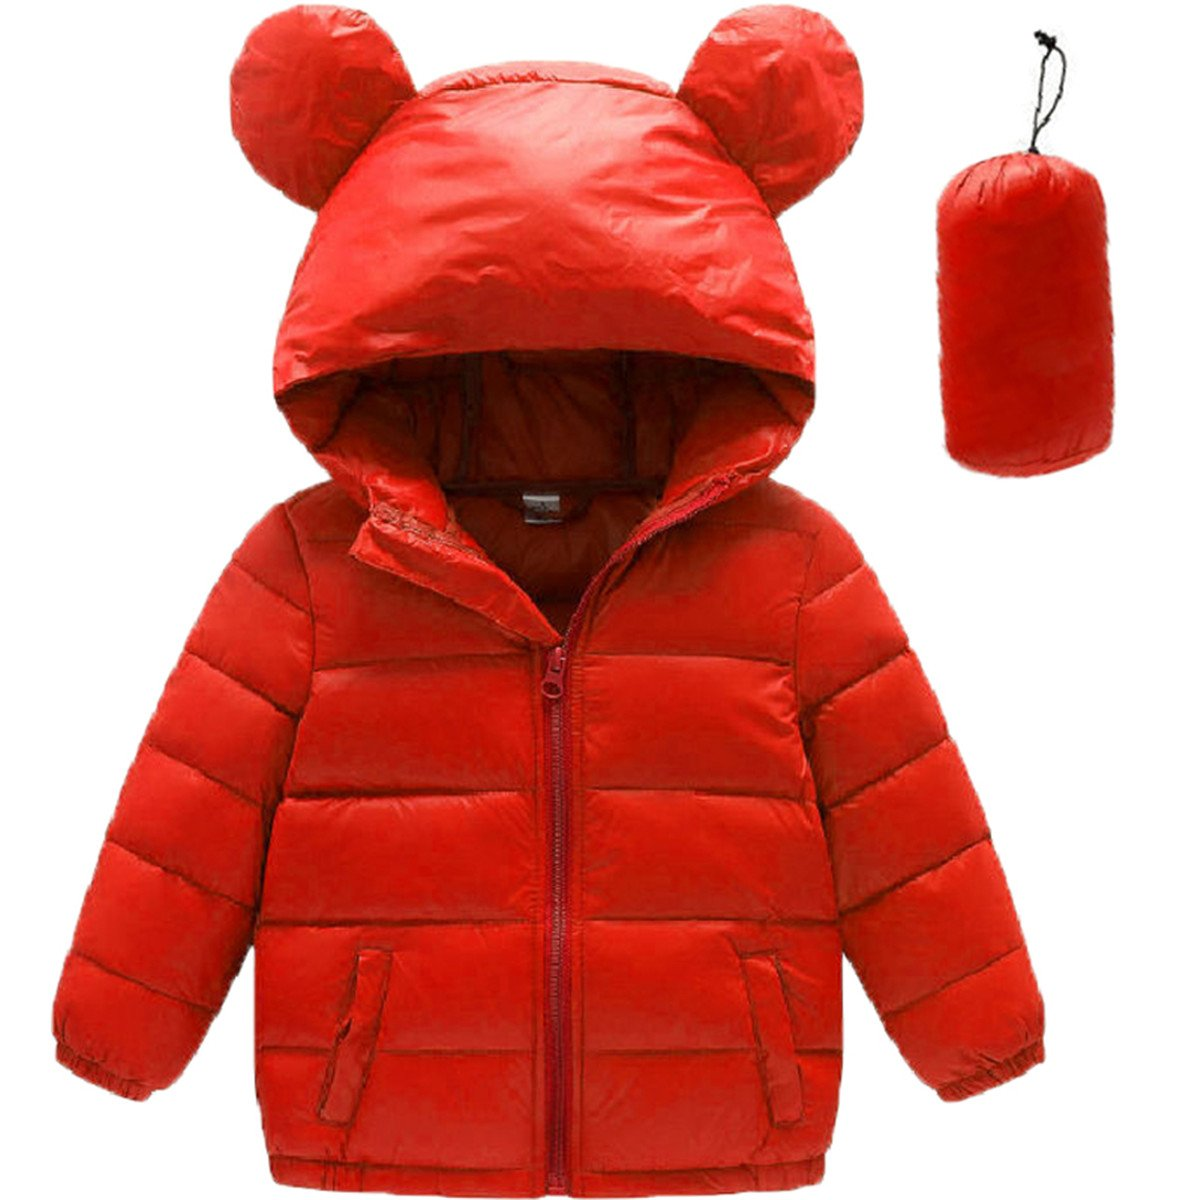 REWANGOING Little Grils Girls Lightweight Ear Hooded Puffer Coat Down Jackets YURONTJKO11L91